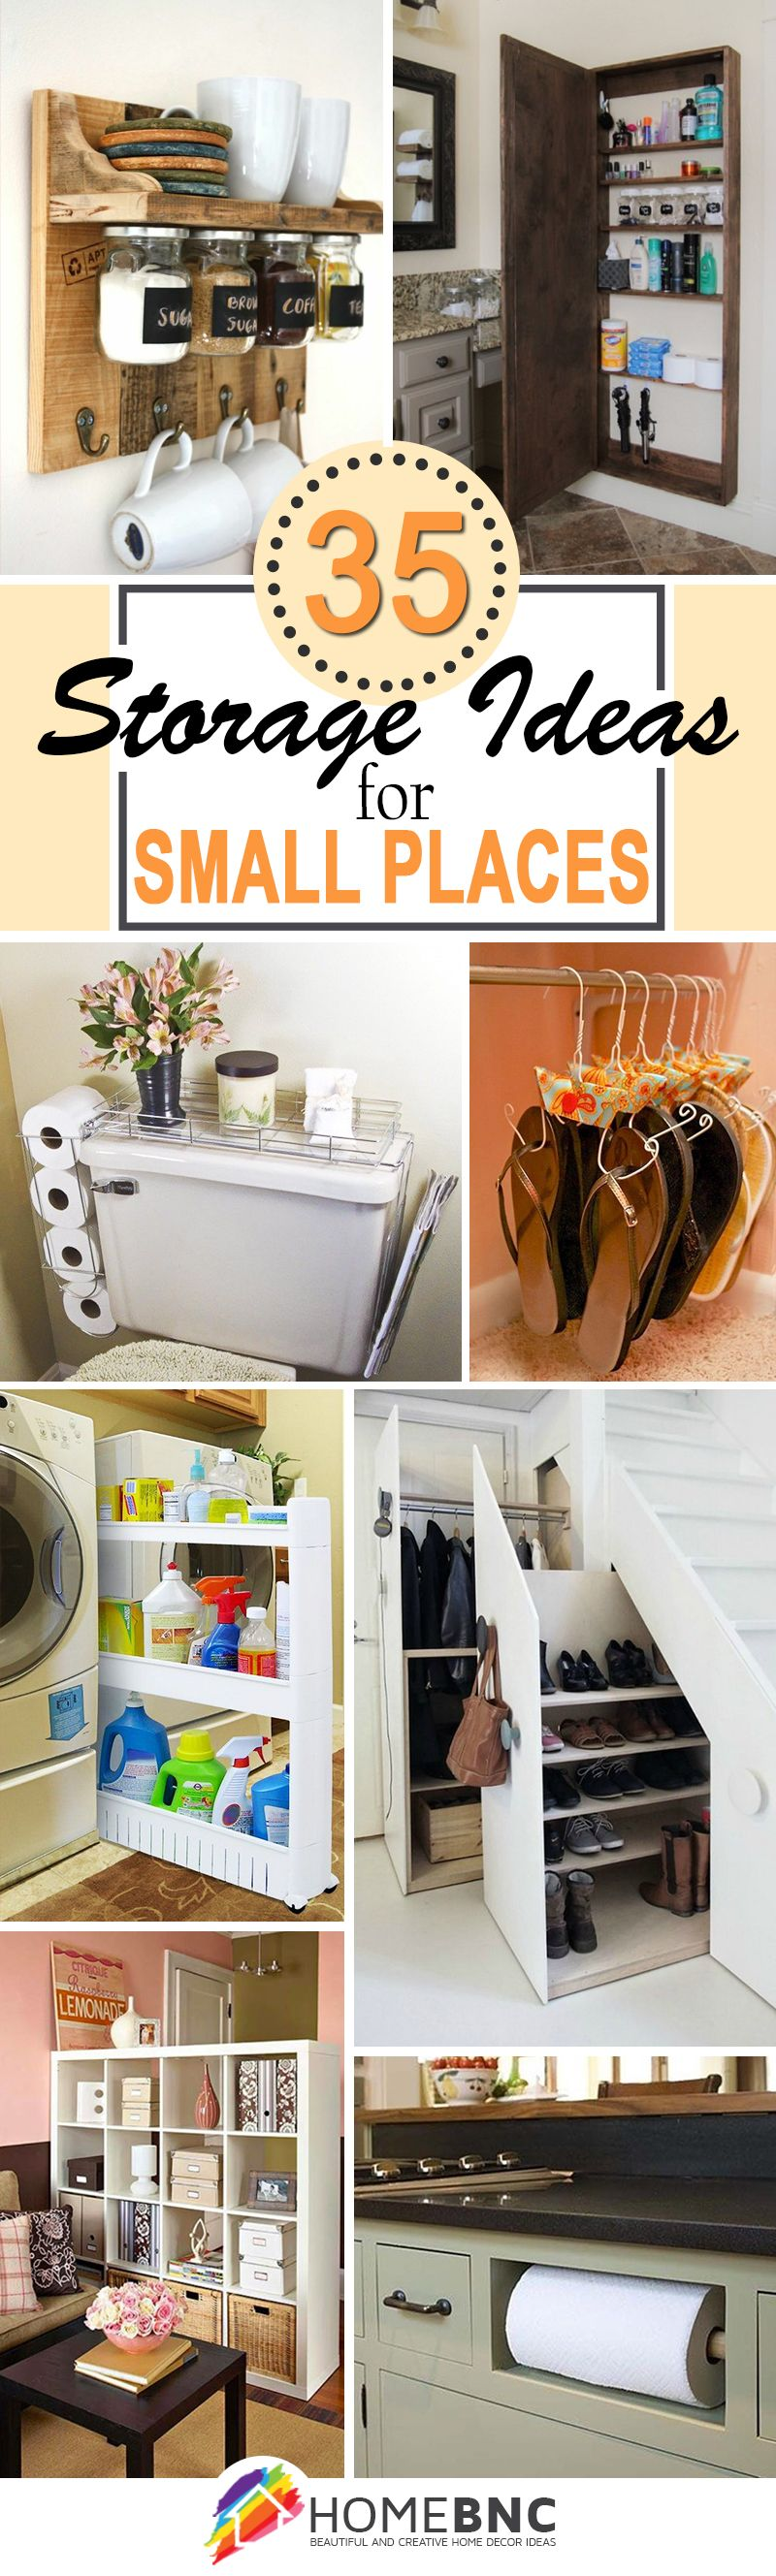 50 Genius Storage Ideas For Small Spaces To Make Your Home Feel Bigger Bedroom Solutions Diy Space